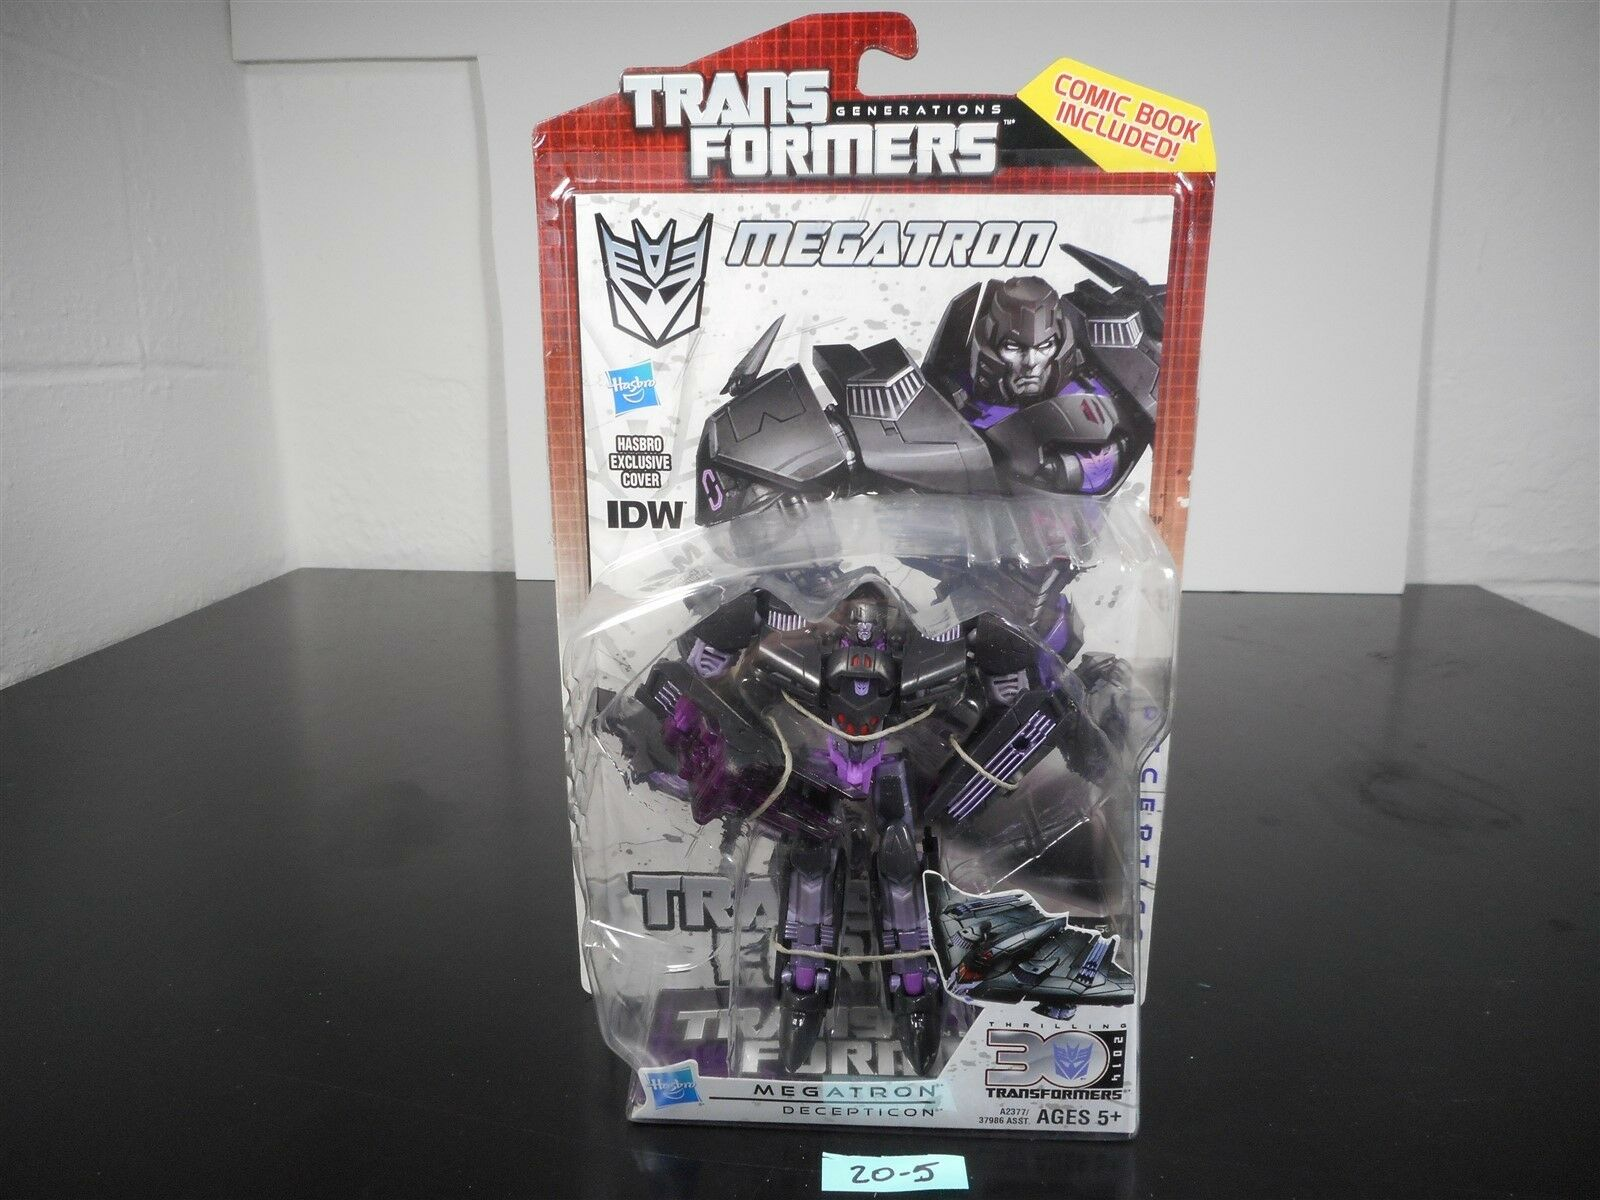 NEW & SEALED   TRANSFORMERS GENERATIONS IDW MEGATRON DELUXE FIGURE 30TH ANN 20-5